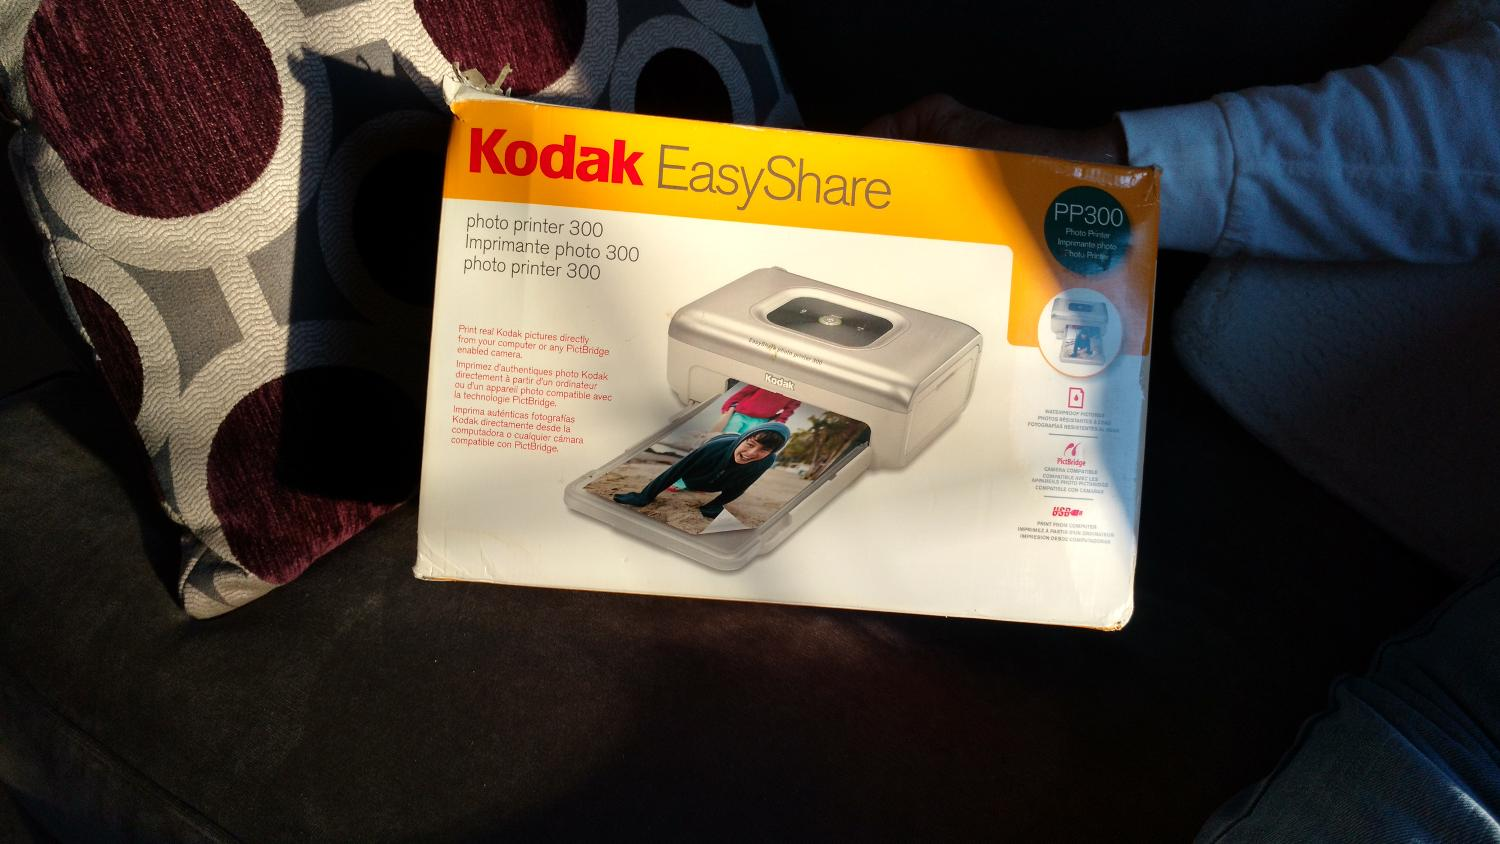 Find More Kodak Easy Share Photo Printer For Sale At Up To 90 Off